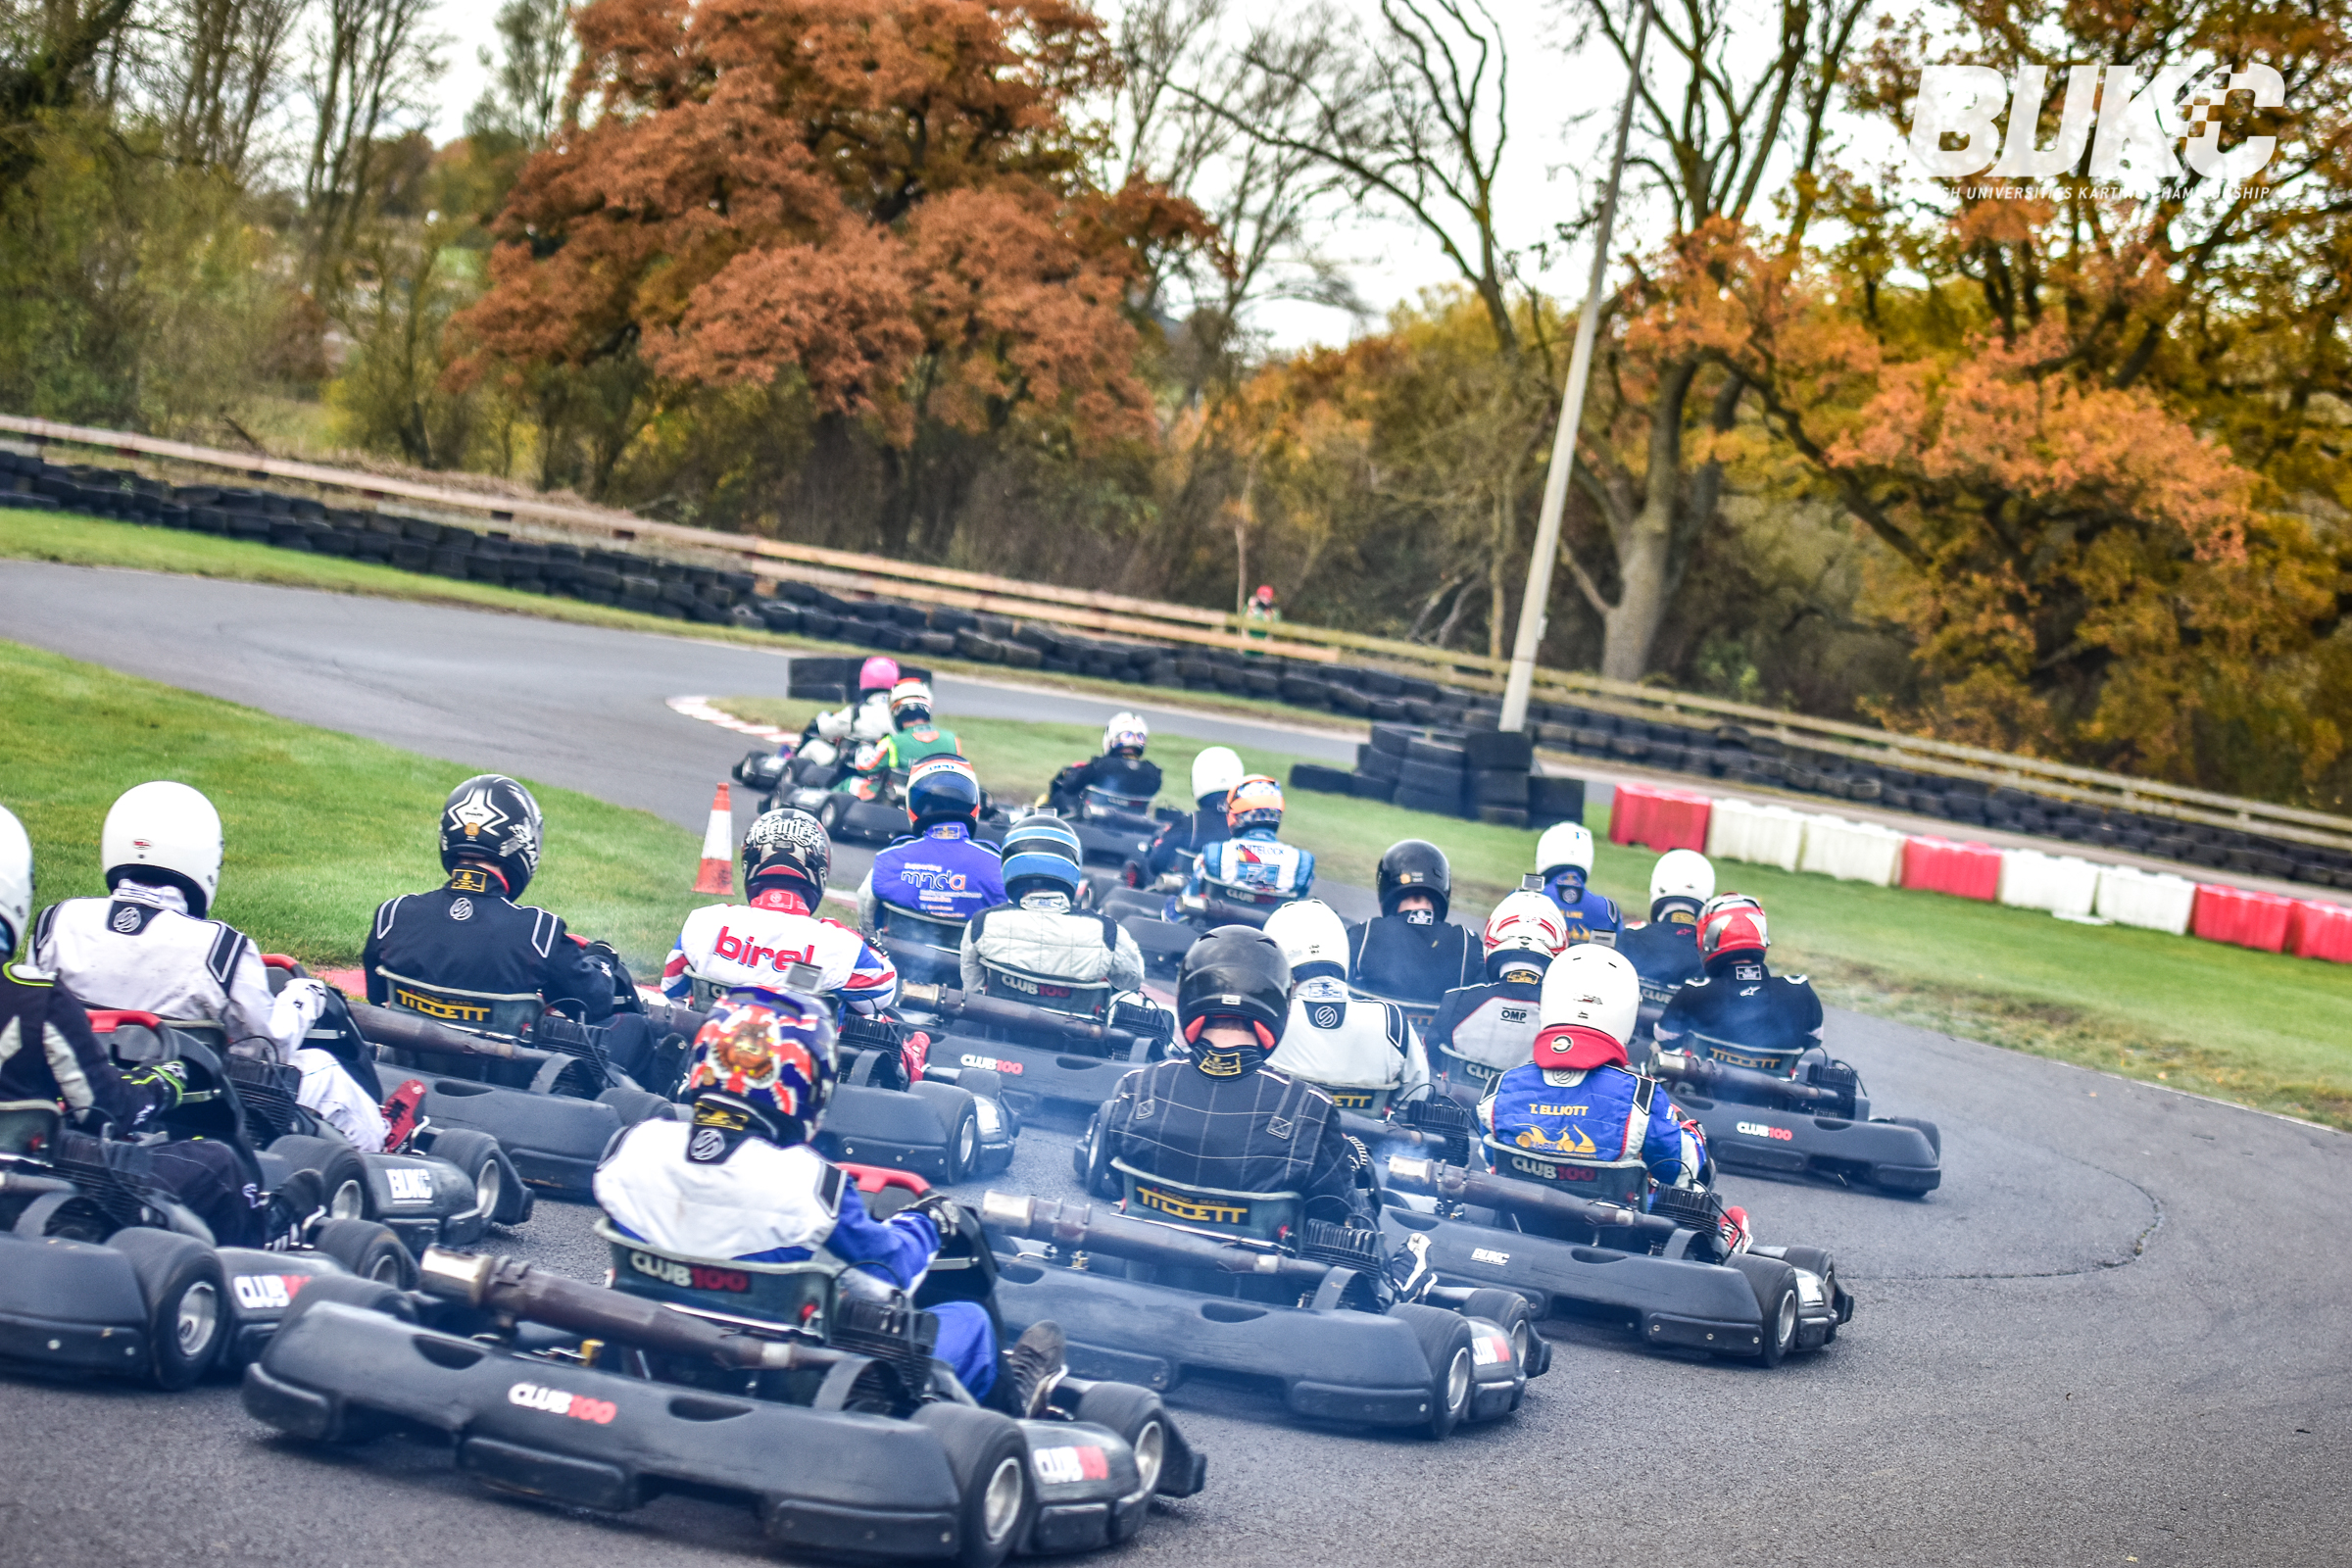 Drivers speeding on the Whilton Mill track Photo by Stu Stretton/ BUKC